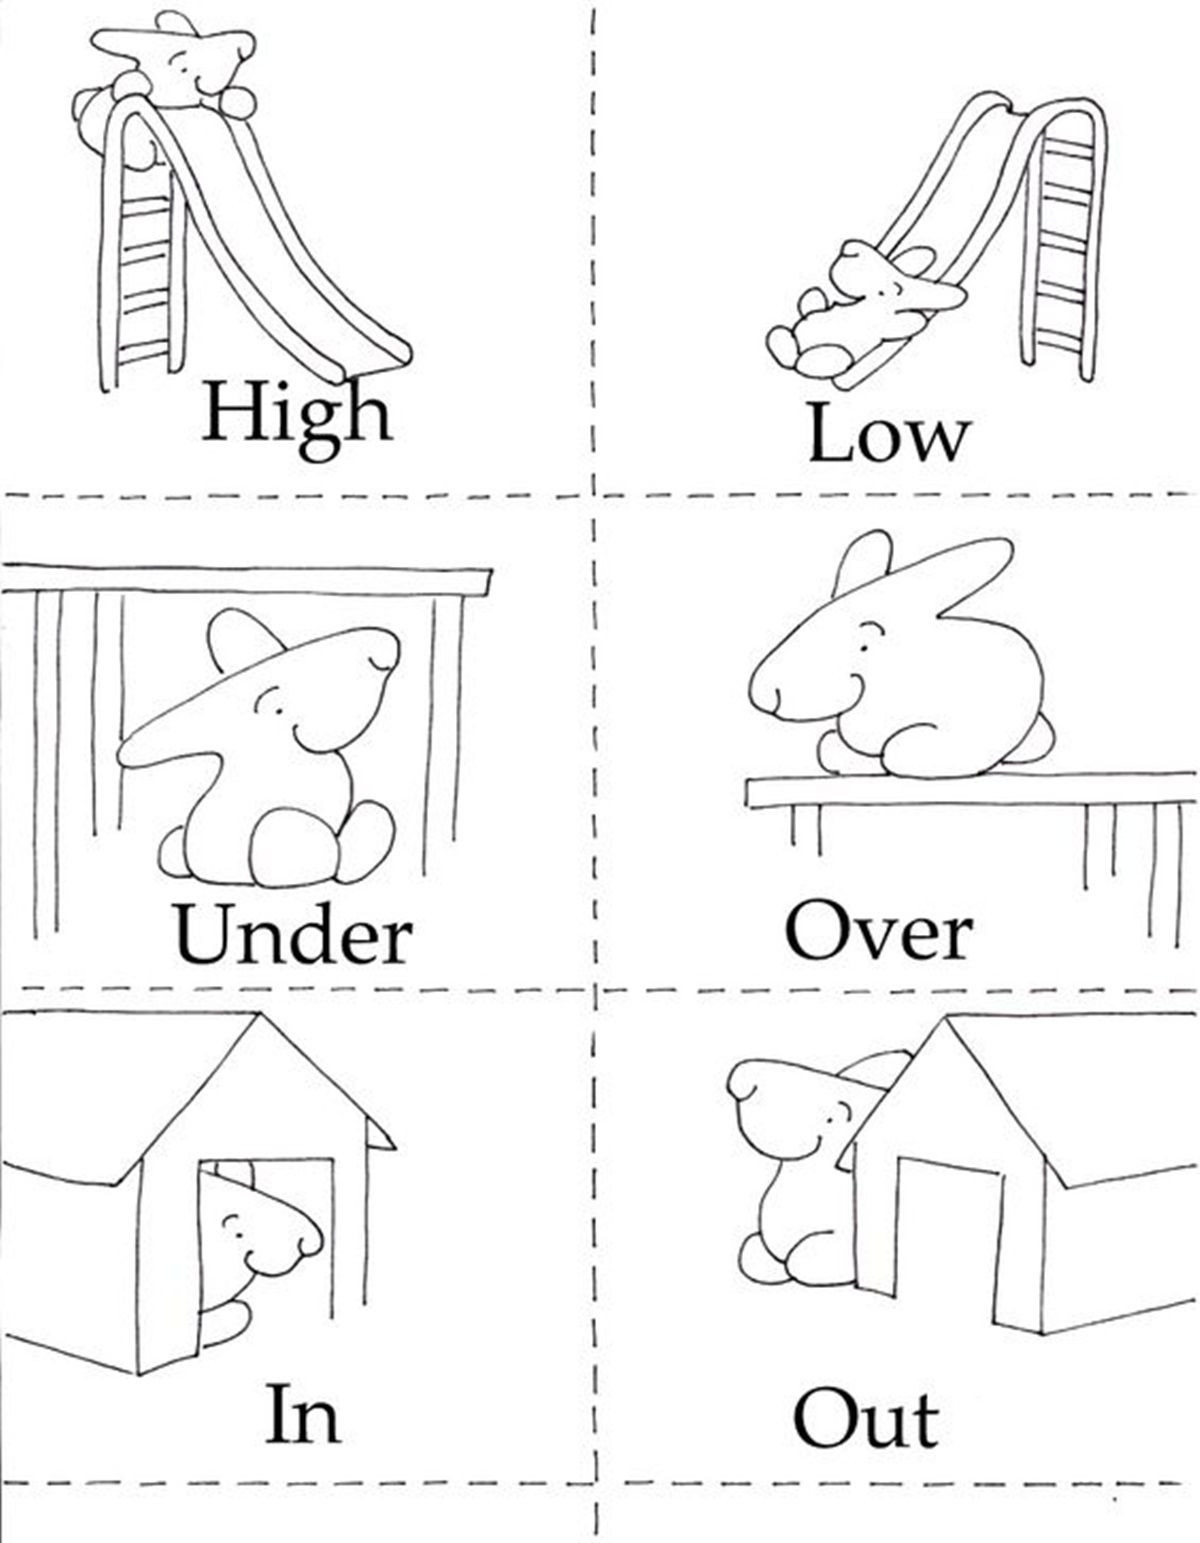 Opposites Worksheet for Preschool Mon Opposite Words In English